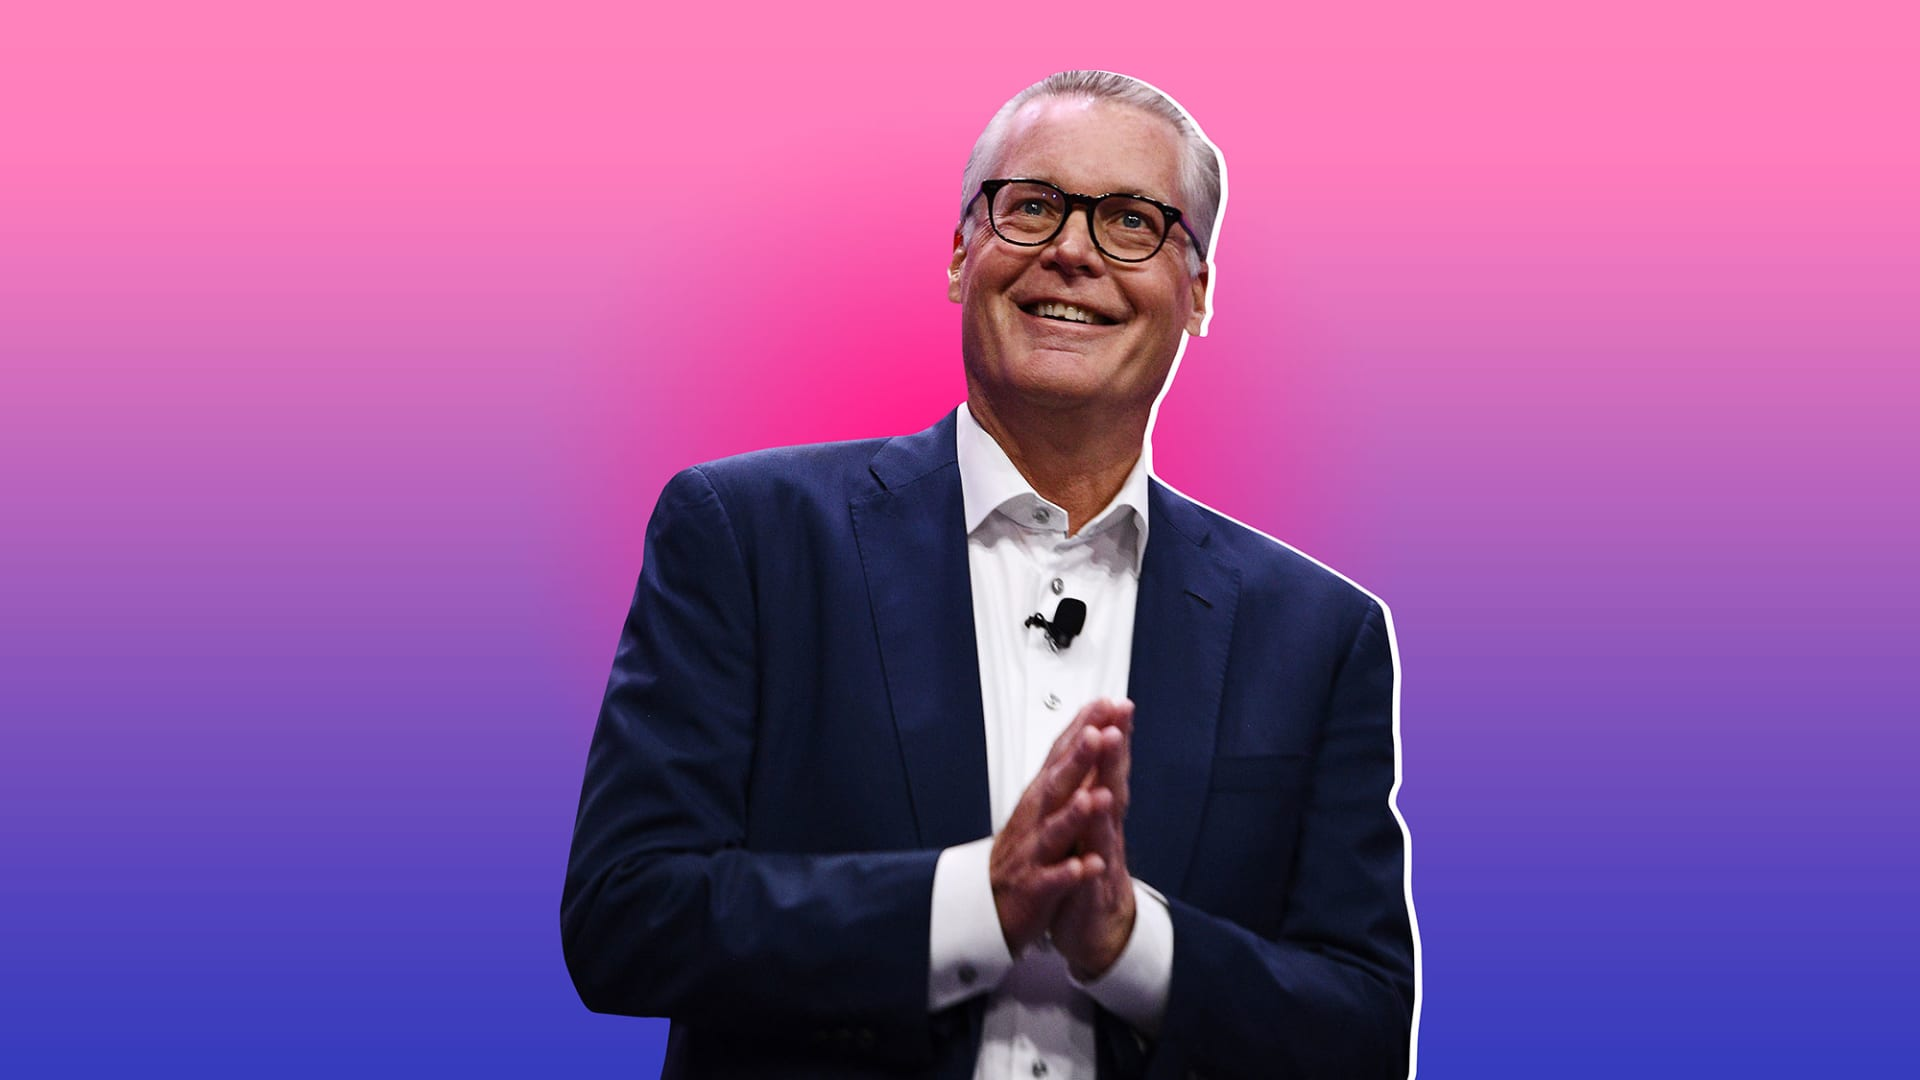 The CEO of Delta Air Lines Just Shared the Perfect Leadership Message for 2021, and It's Only 7 Words